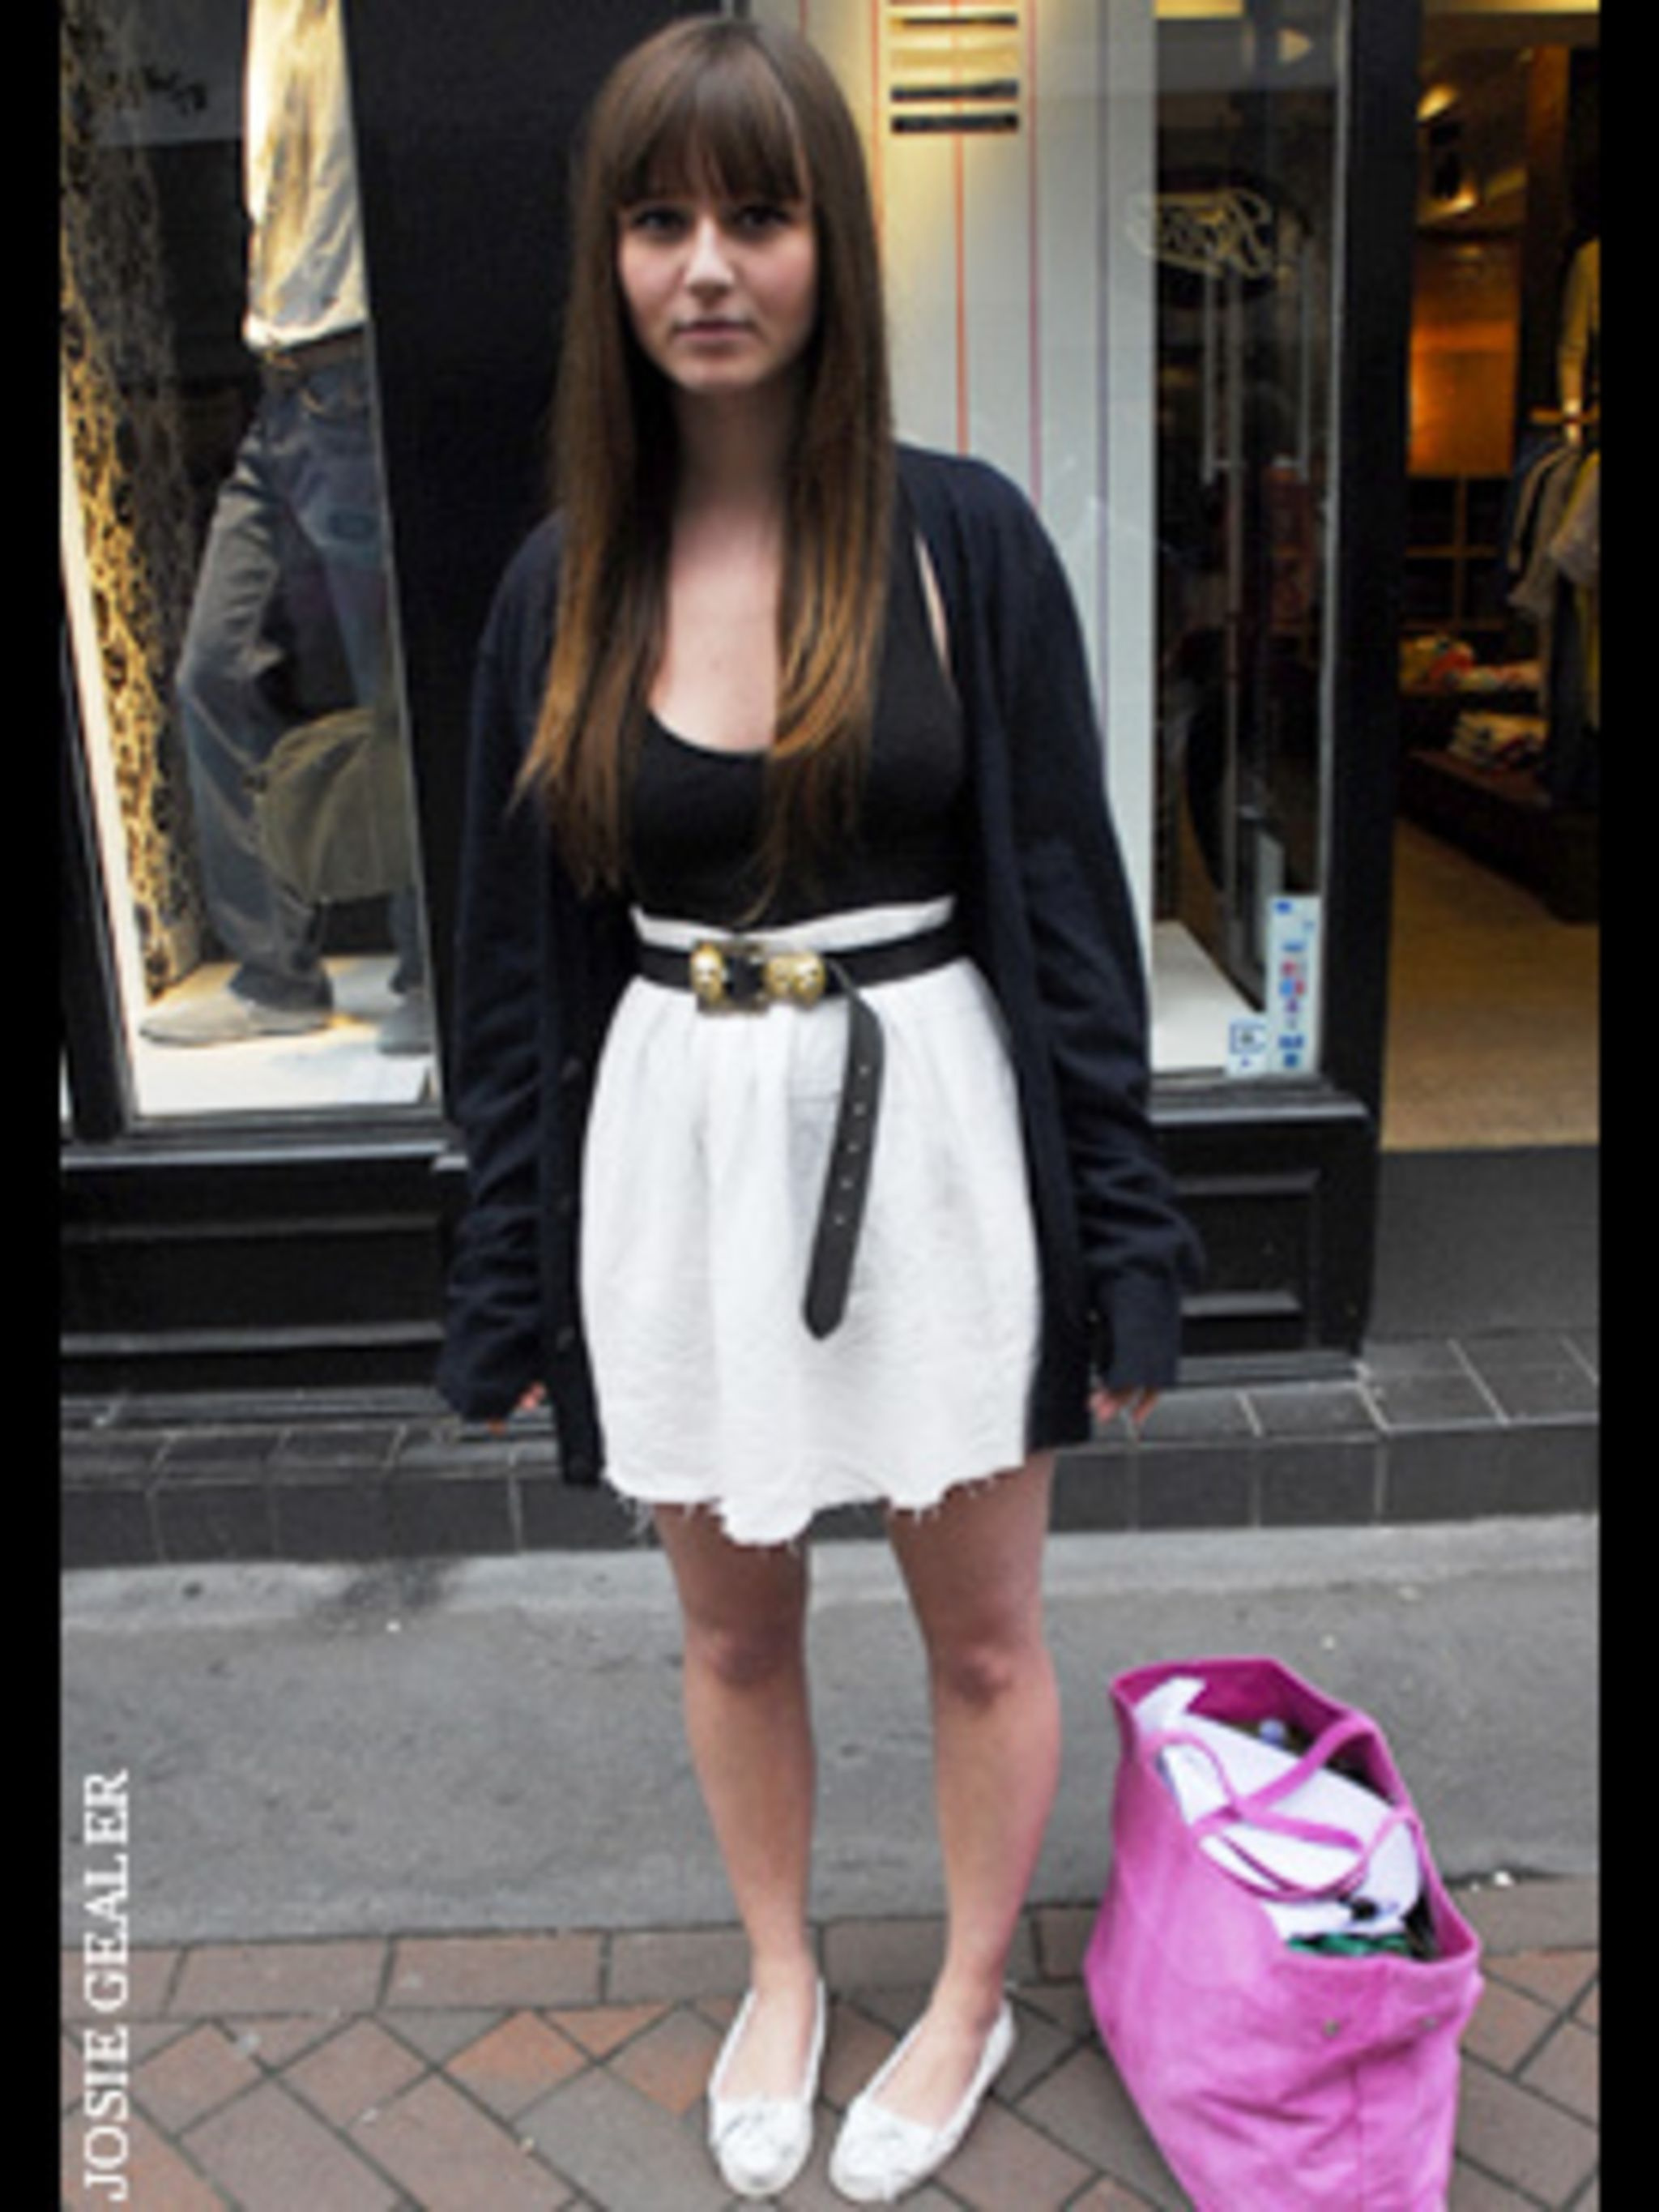 <p>Scarlett-Rose shows us how to rock the nautical trend without being too obvious - we love her style. The white, high waisted skirt - (note the DIY ripped hem), teamed with a gold, buckled belt and lust-have loafers, all point subtly towards seaside chi